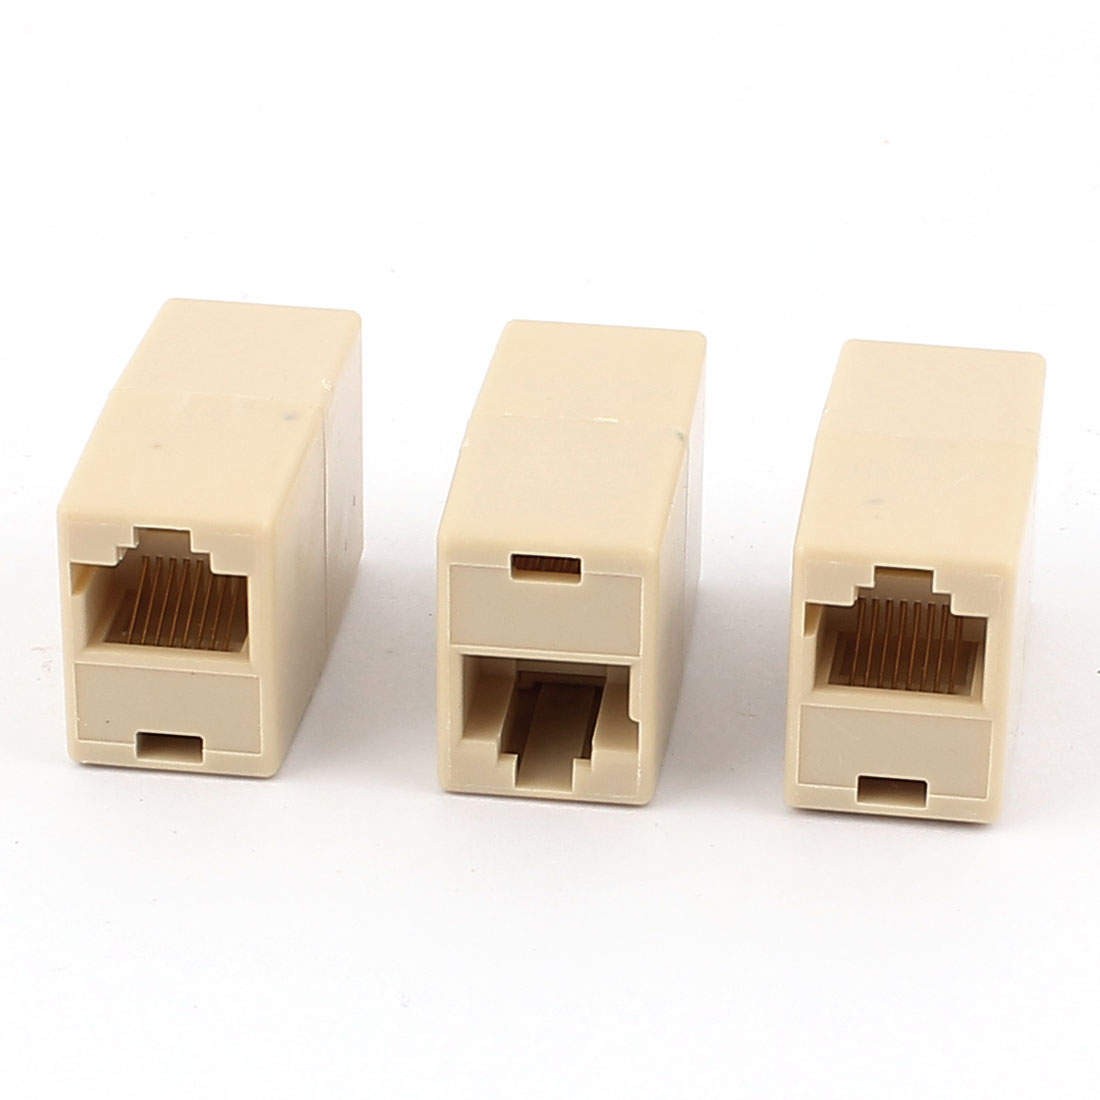 3 Pcs RJ45 8P8C Female to Female F/F Network Cable Coupler Connector Adapter Extender Joiner